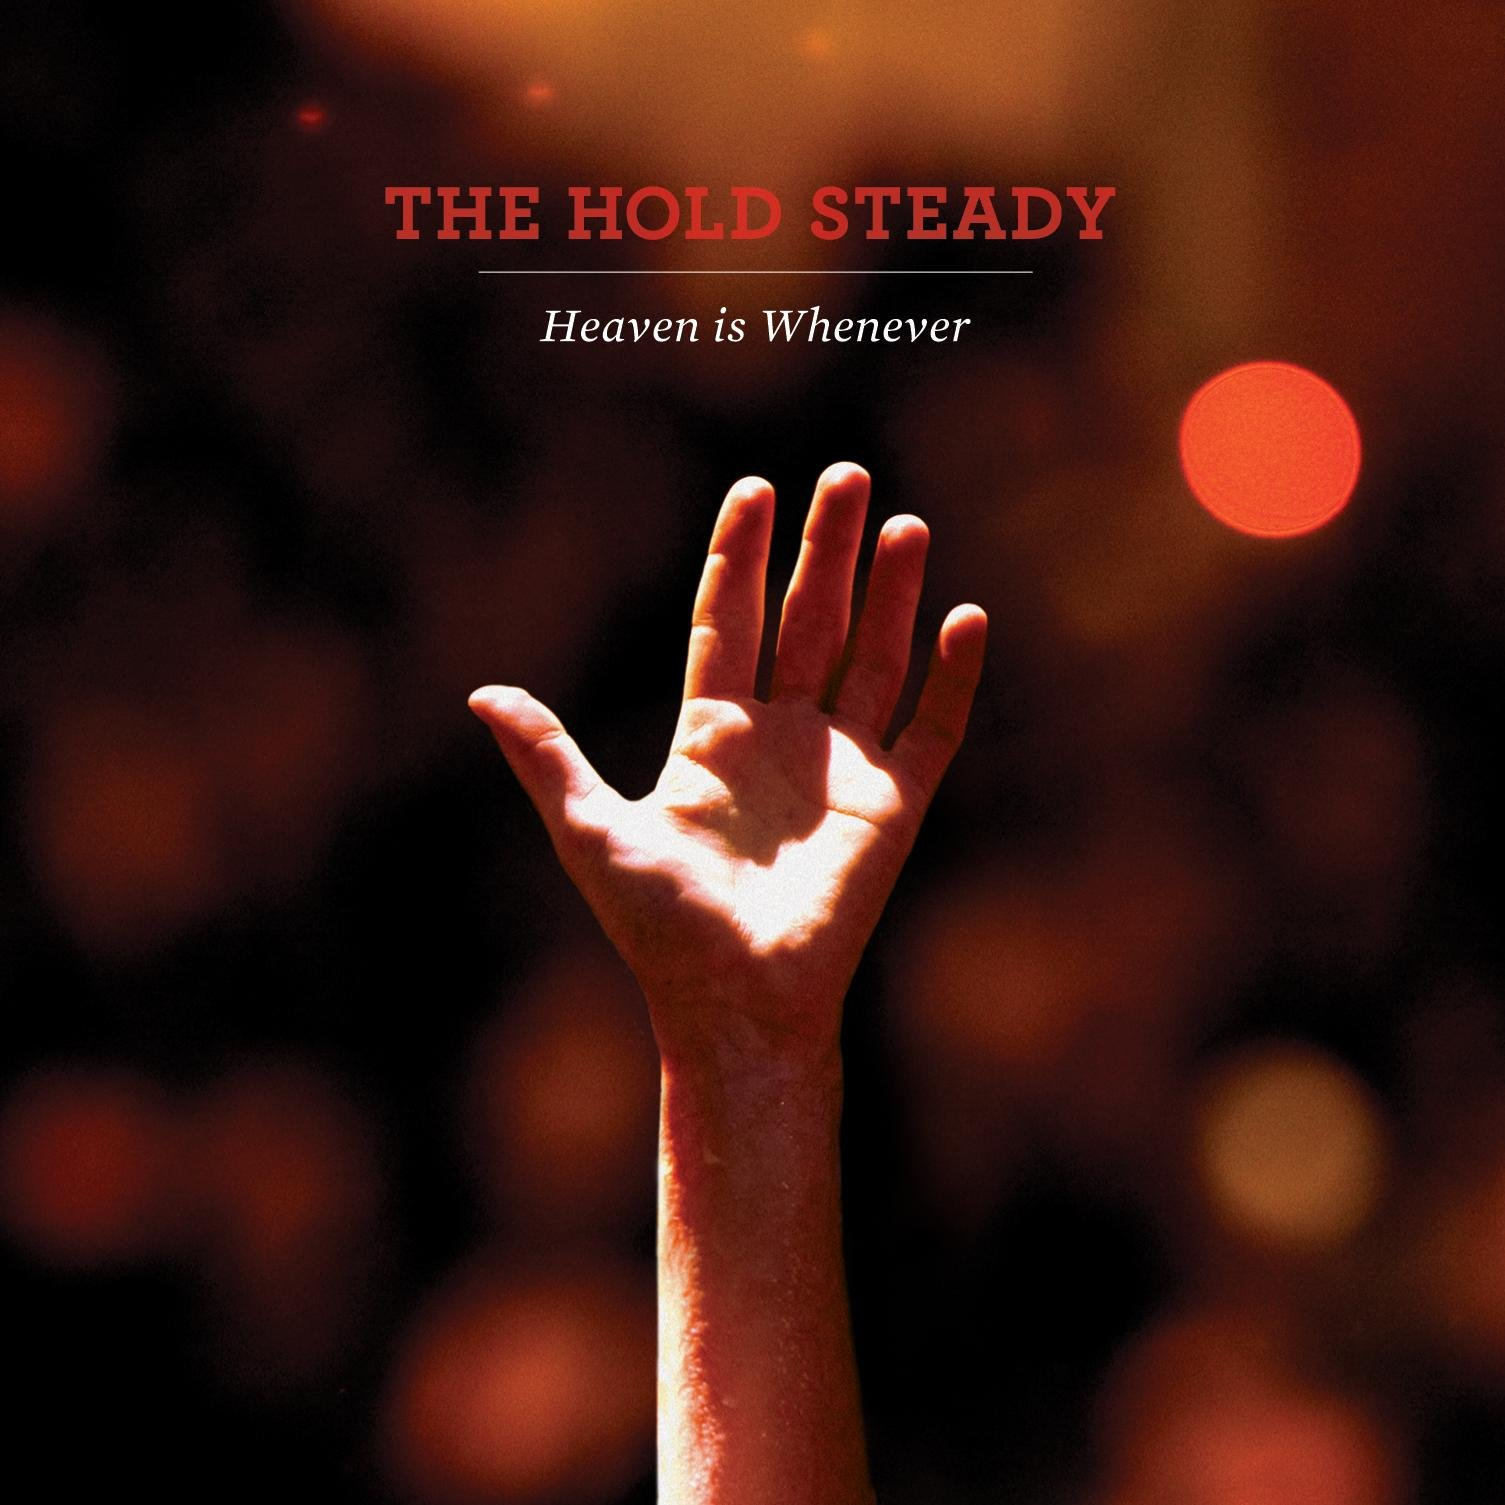 The Hold Steady - Heaven is Whenever: 10th Anniversary Deluxe Edition [Indie Exclusive Limited Edition Red/Orange Marble 2LP]